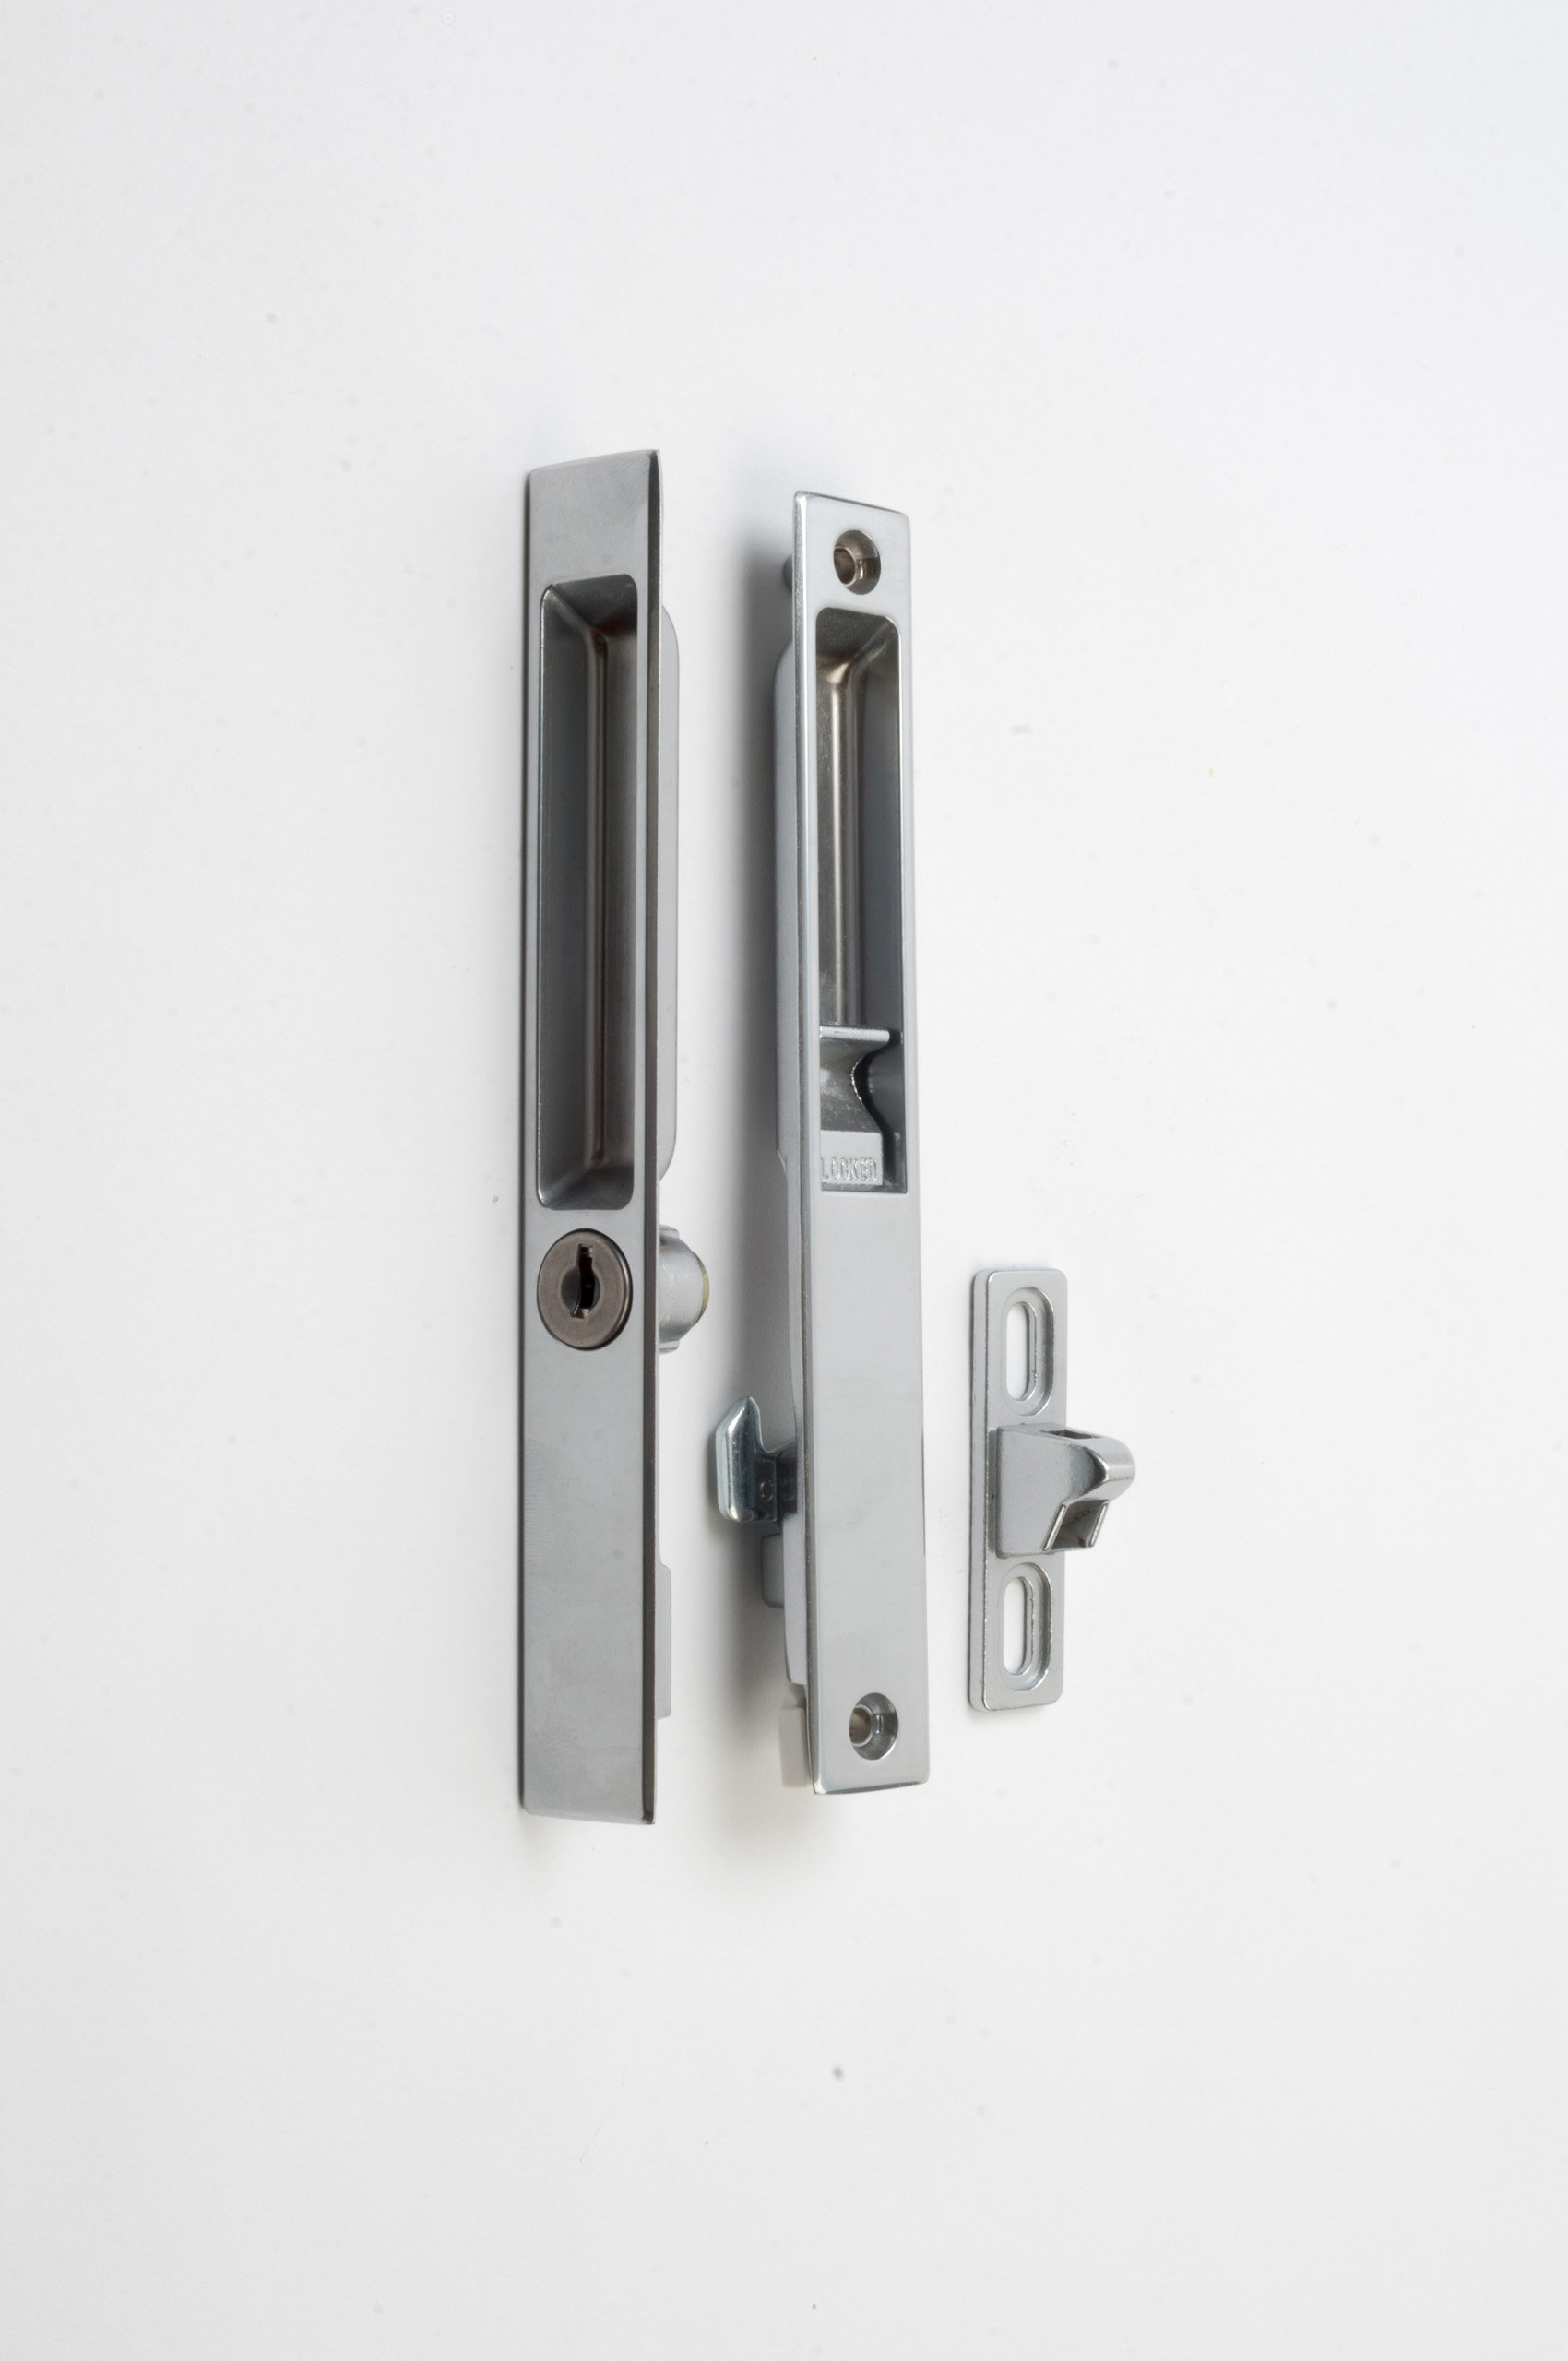 Sliding Glass Patio Door Lock Hardwaresliding glass door lock replacement singapore saudireiki